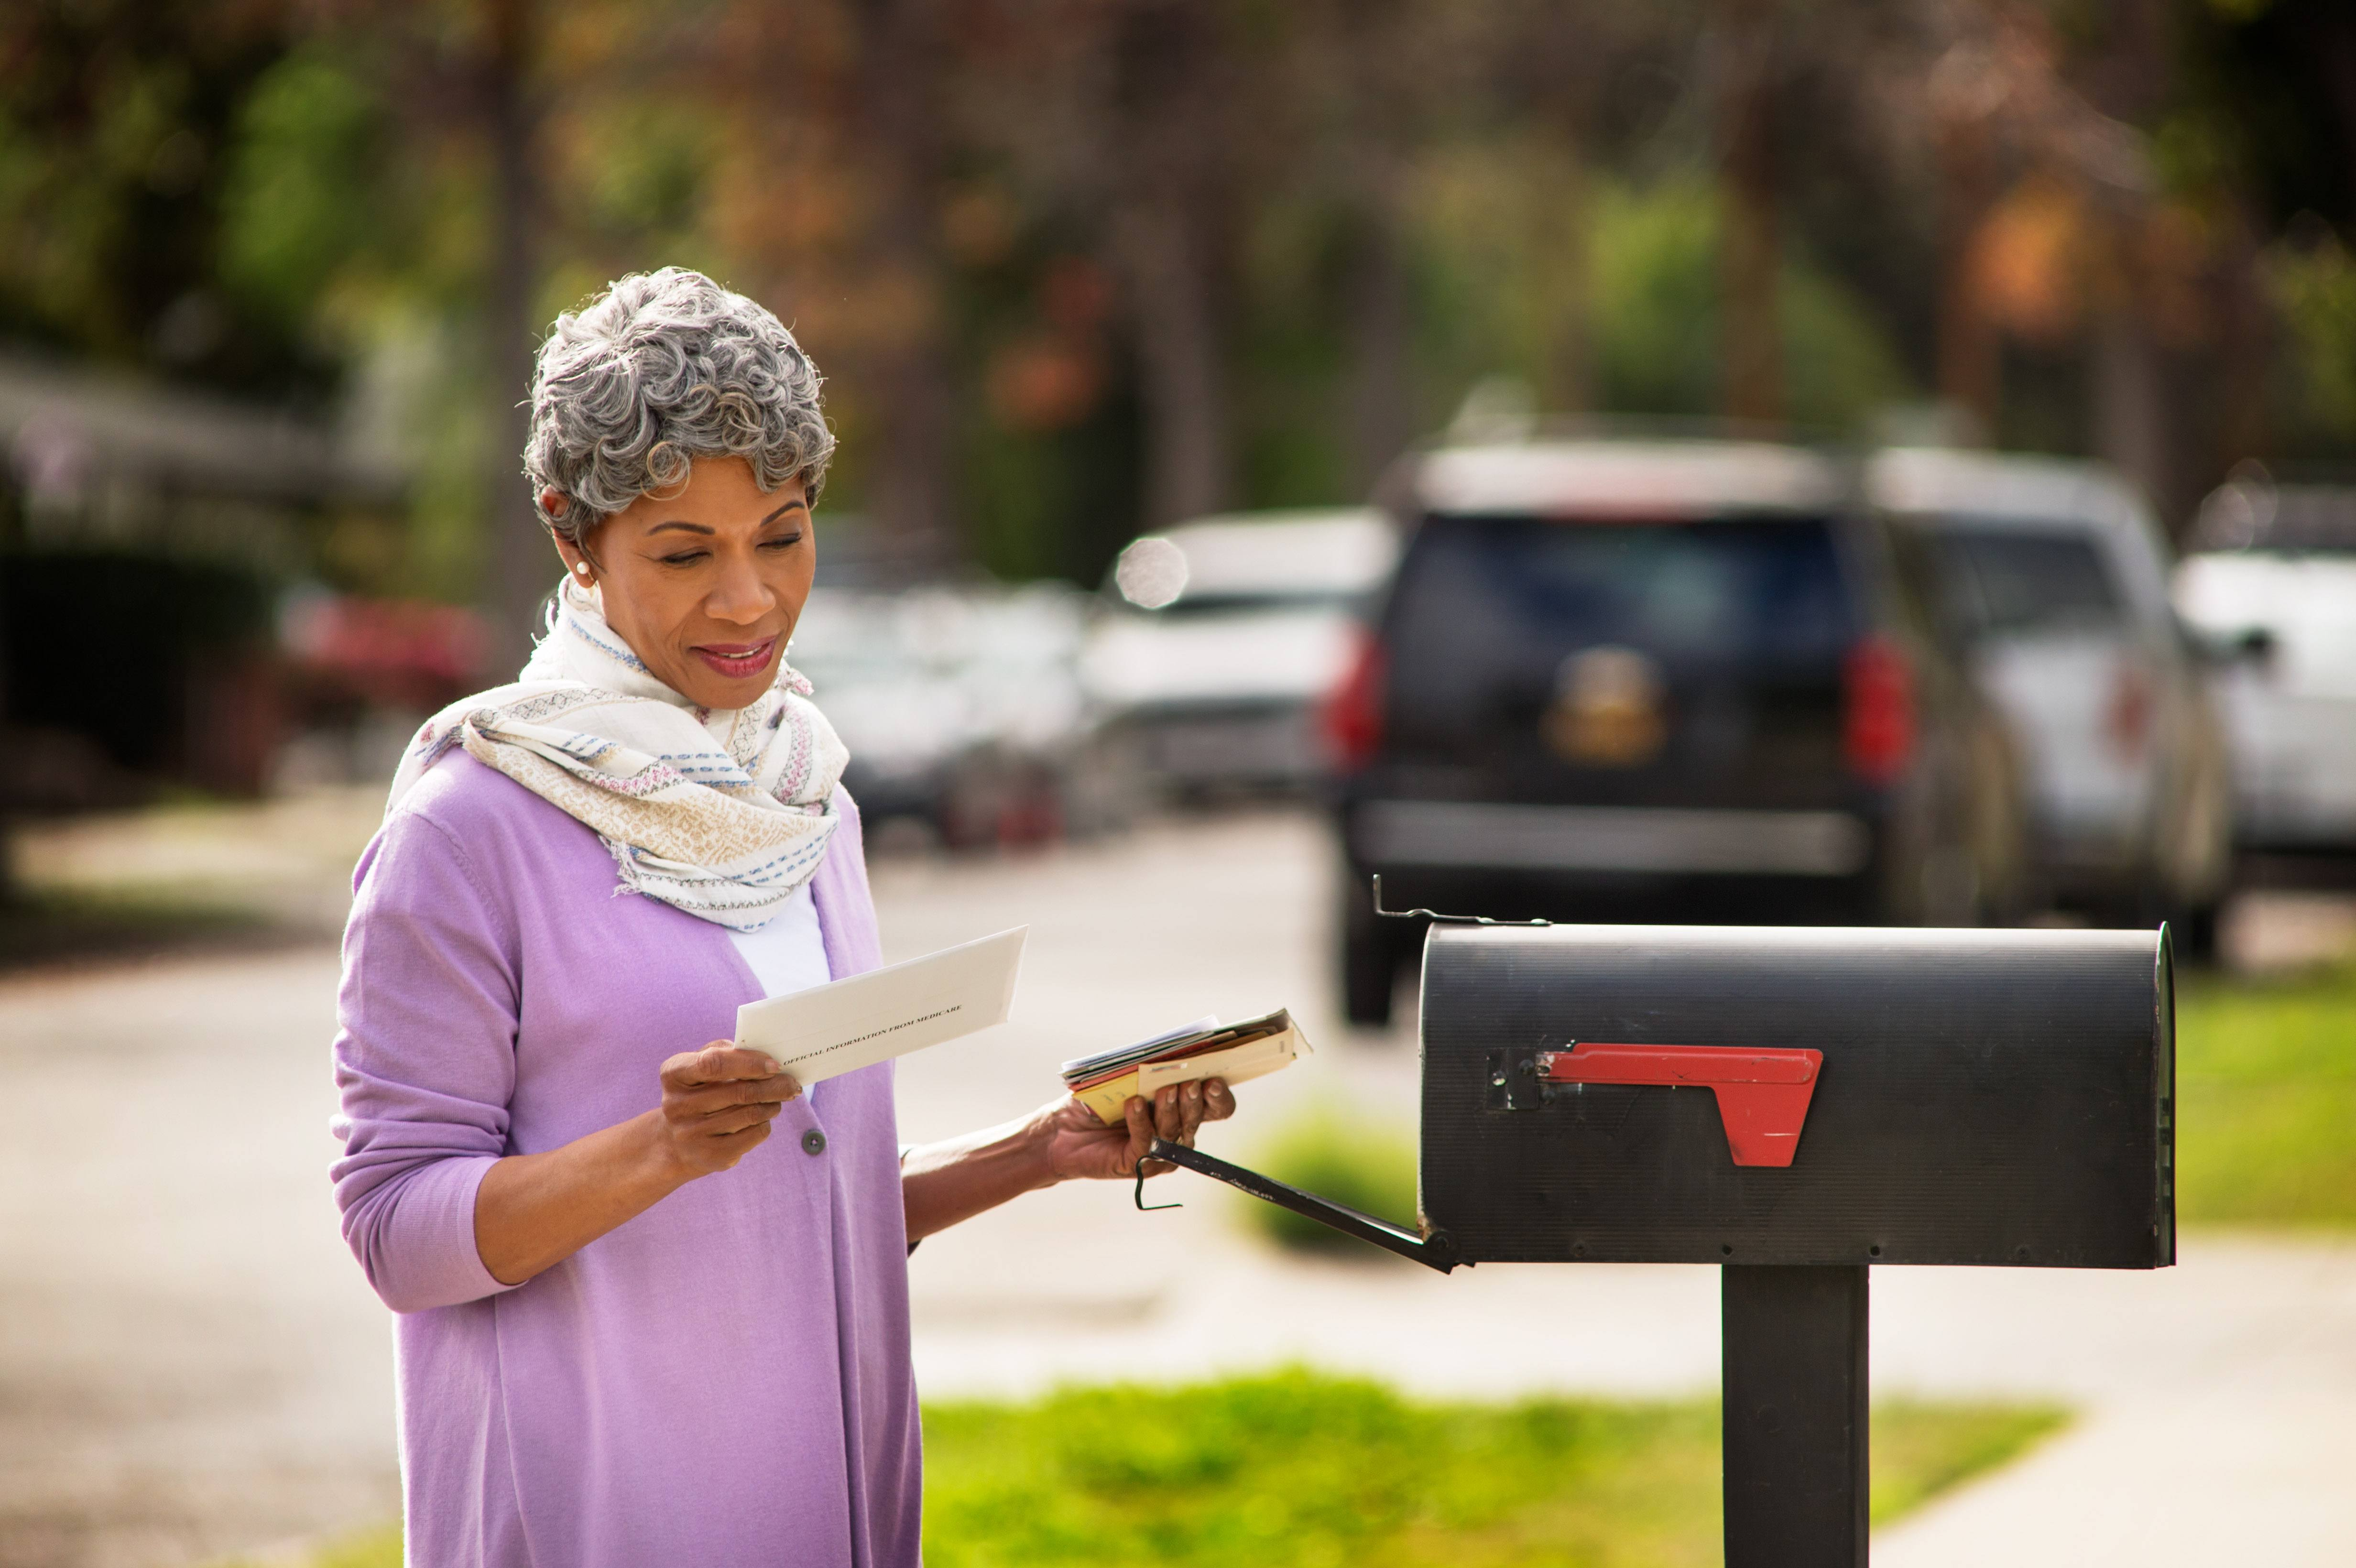 Checking mail for medicare card